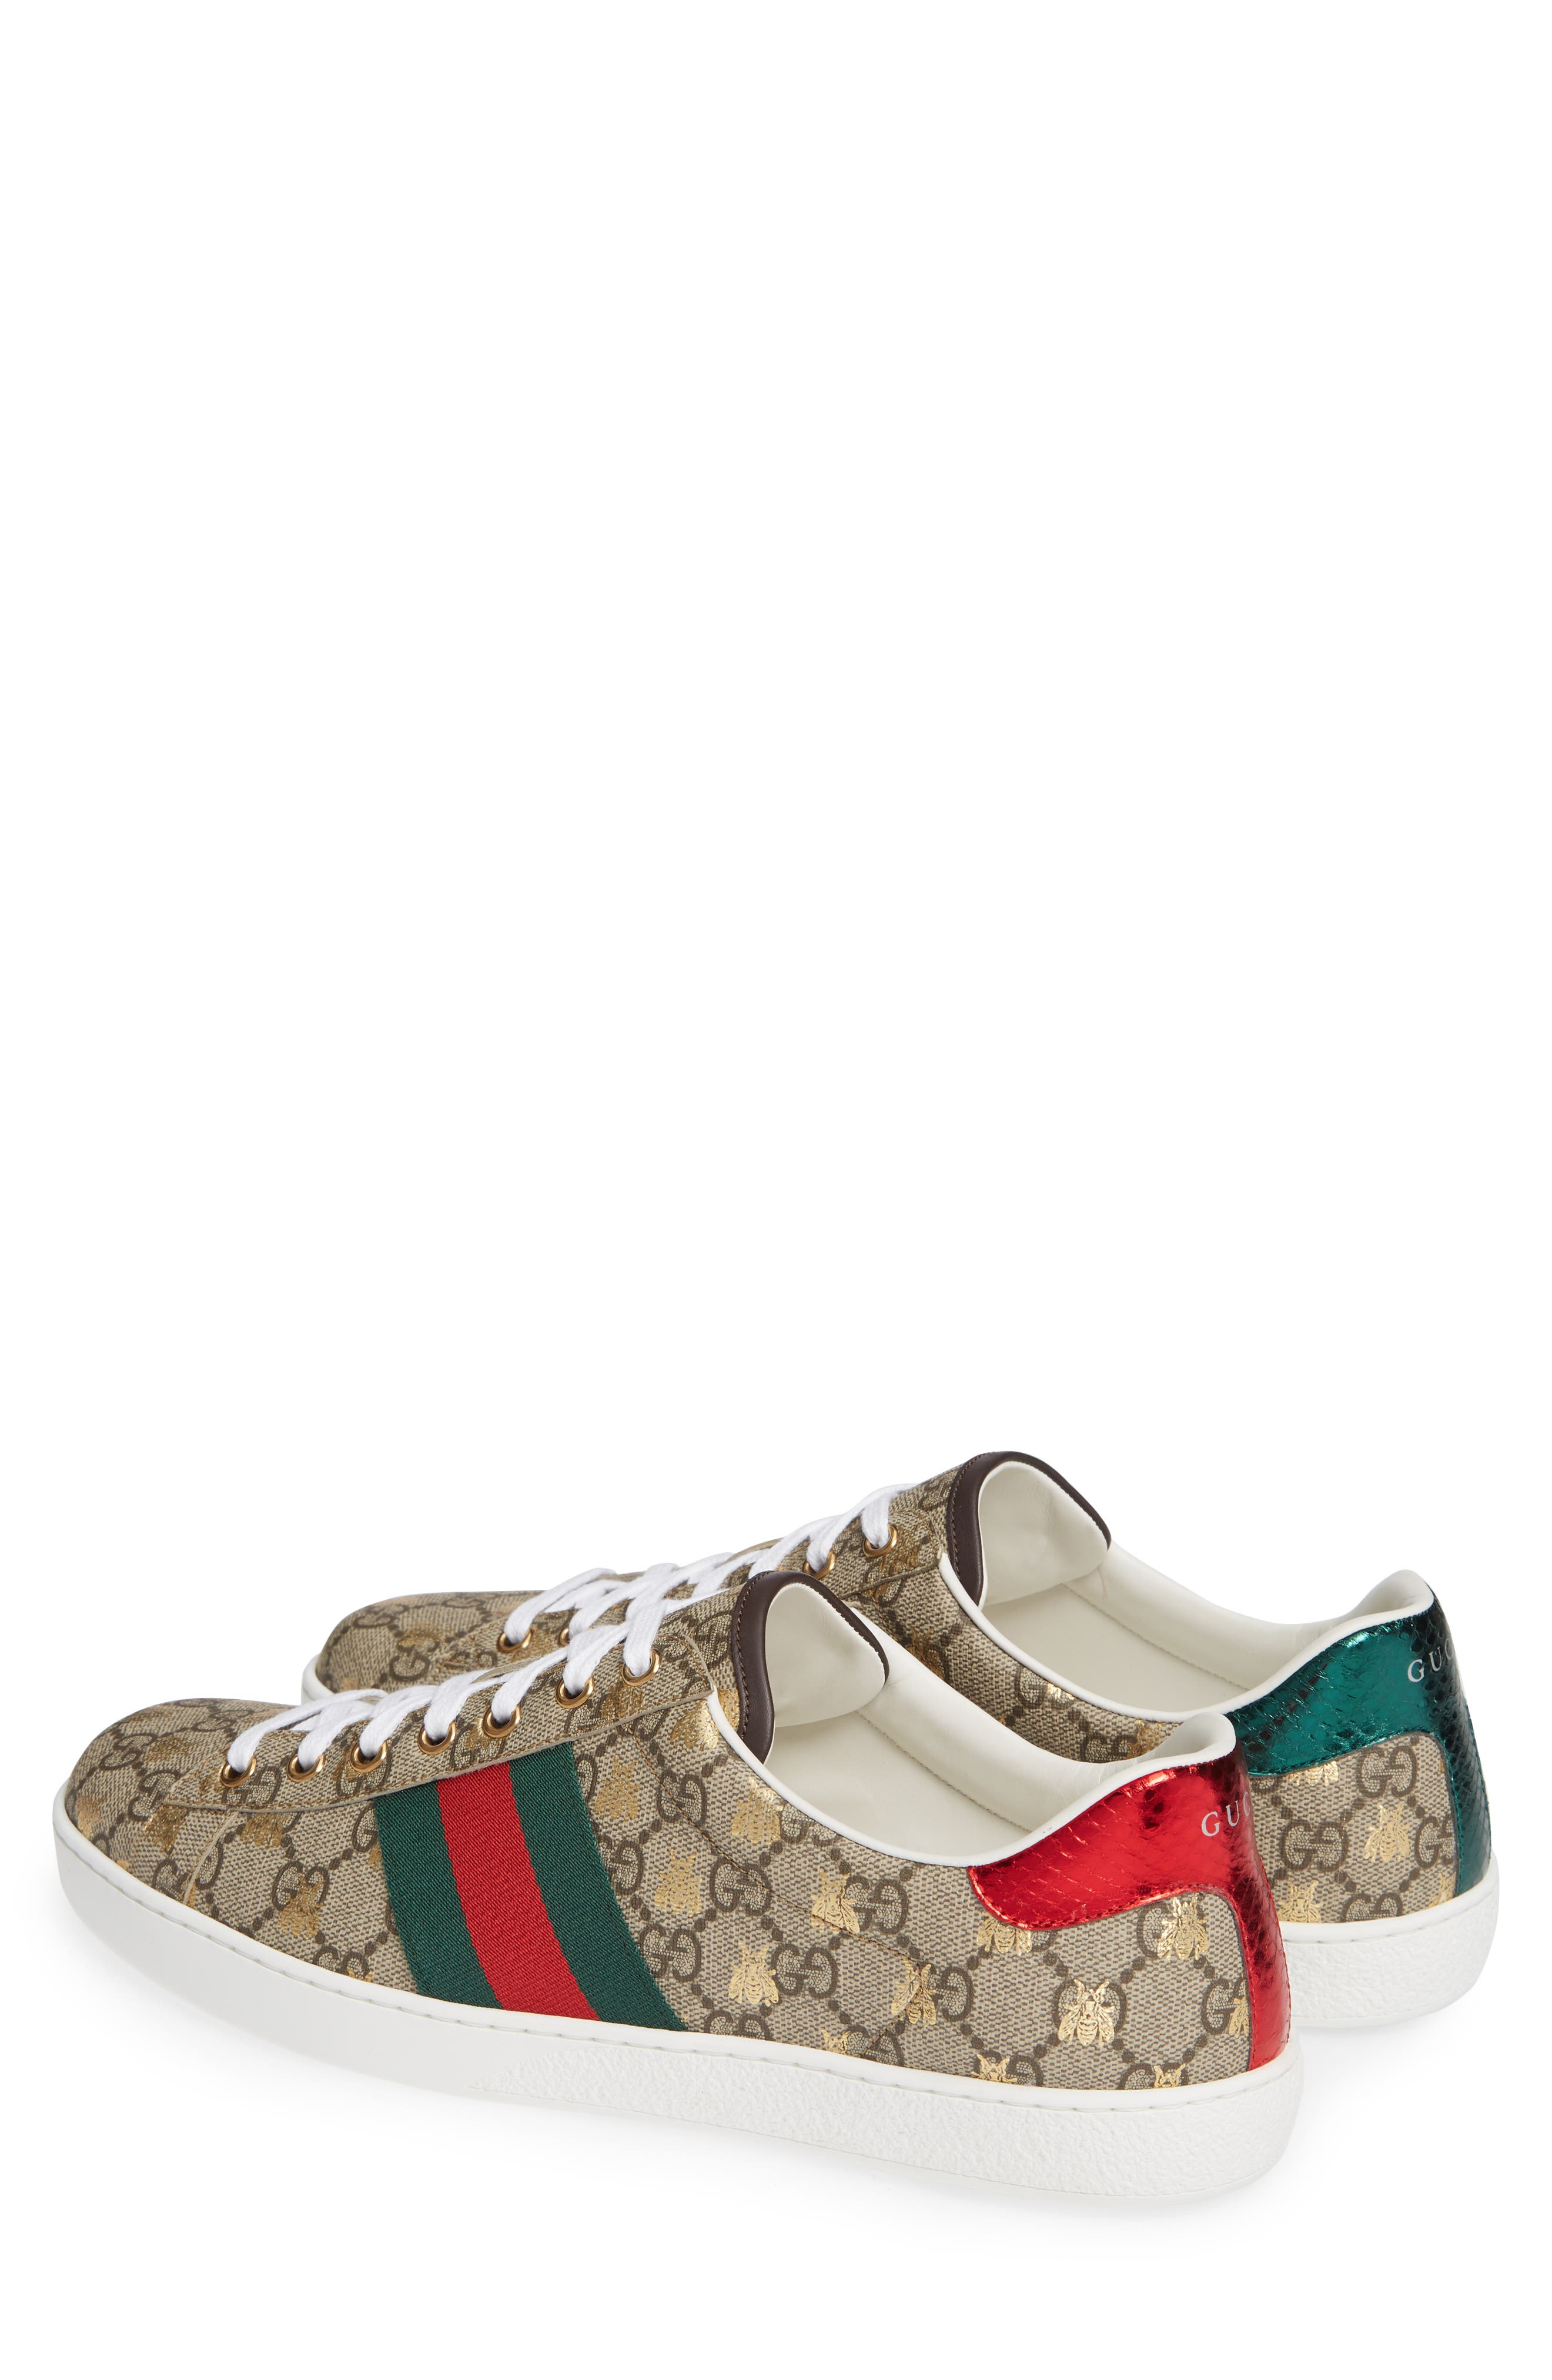 GUCCI, New Ace GG Supreme Sneaker, Alternate thumbnail 2, color, BEIGE/ GOLD